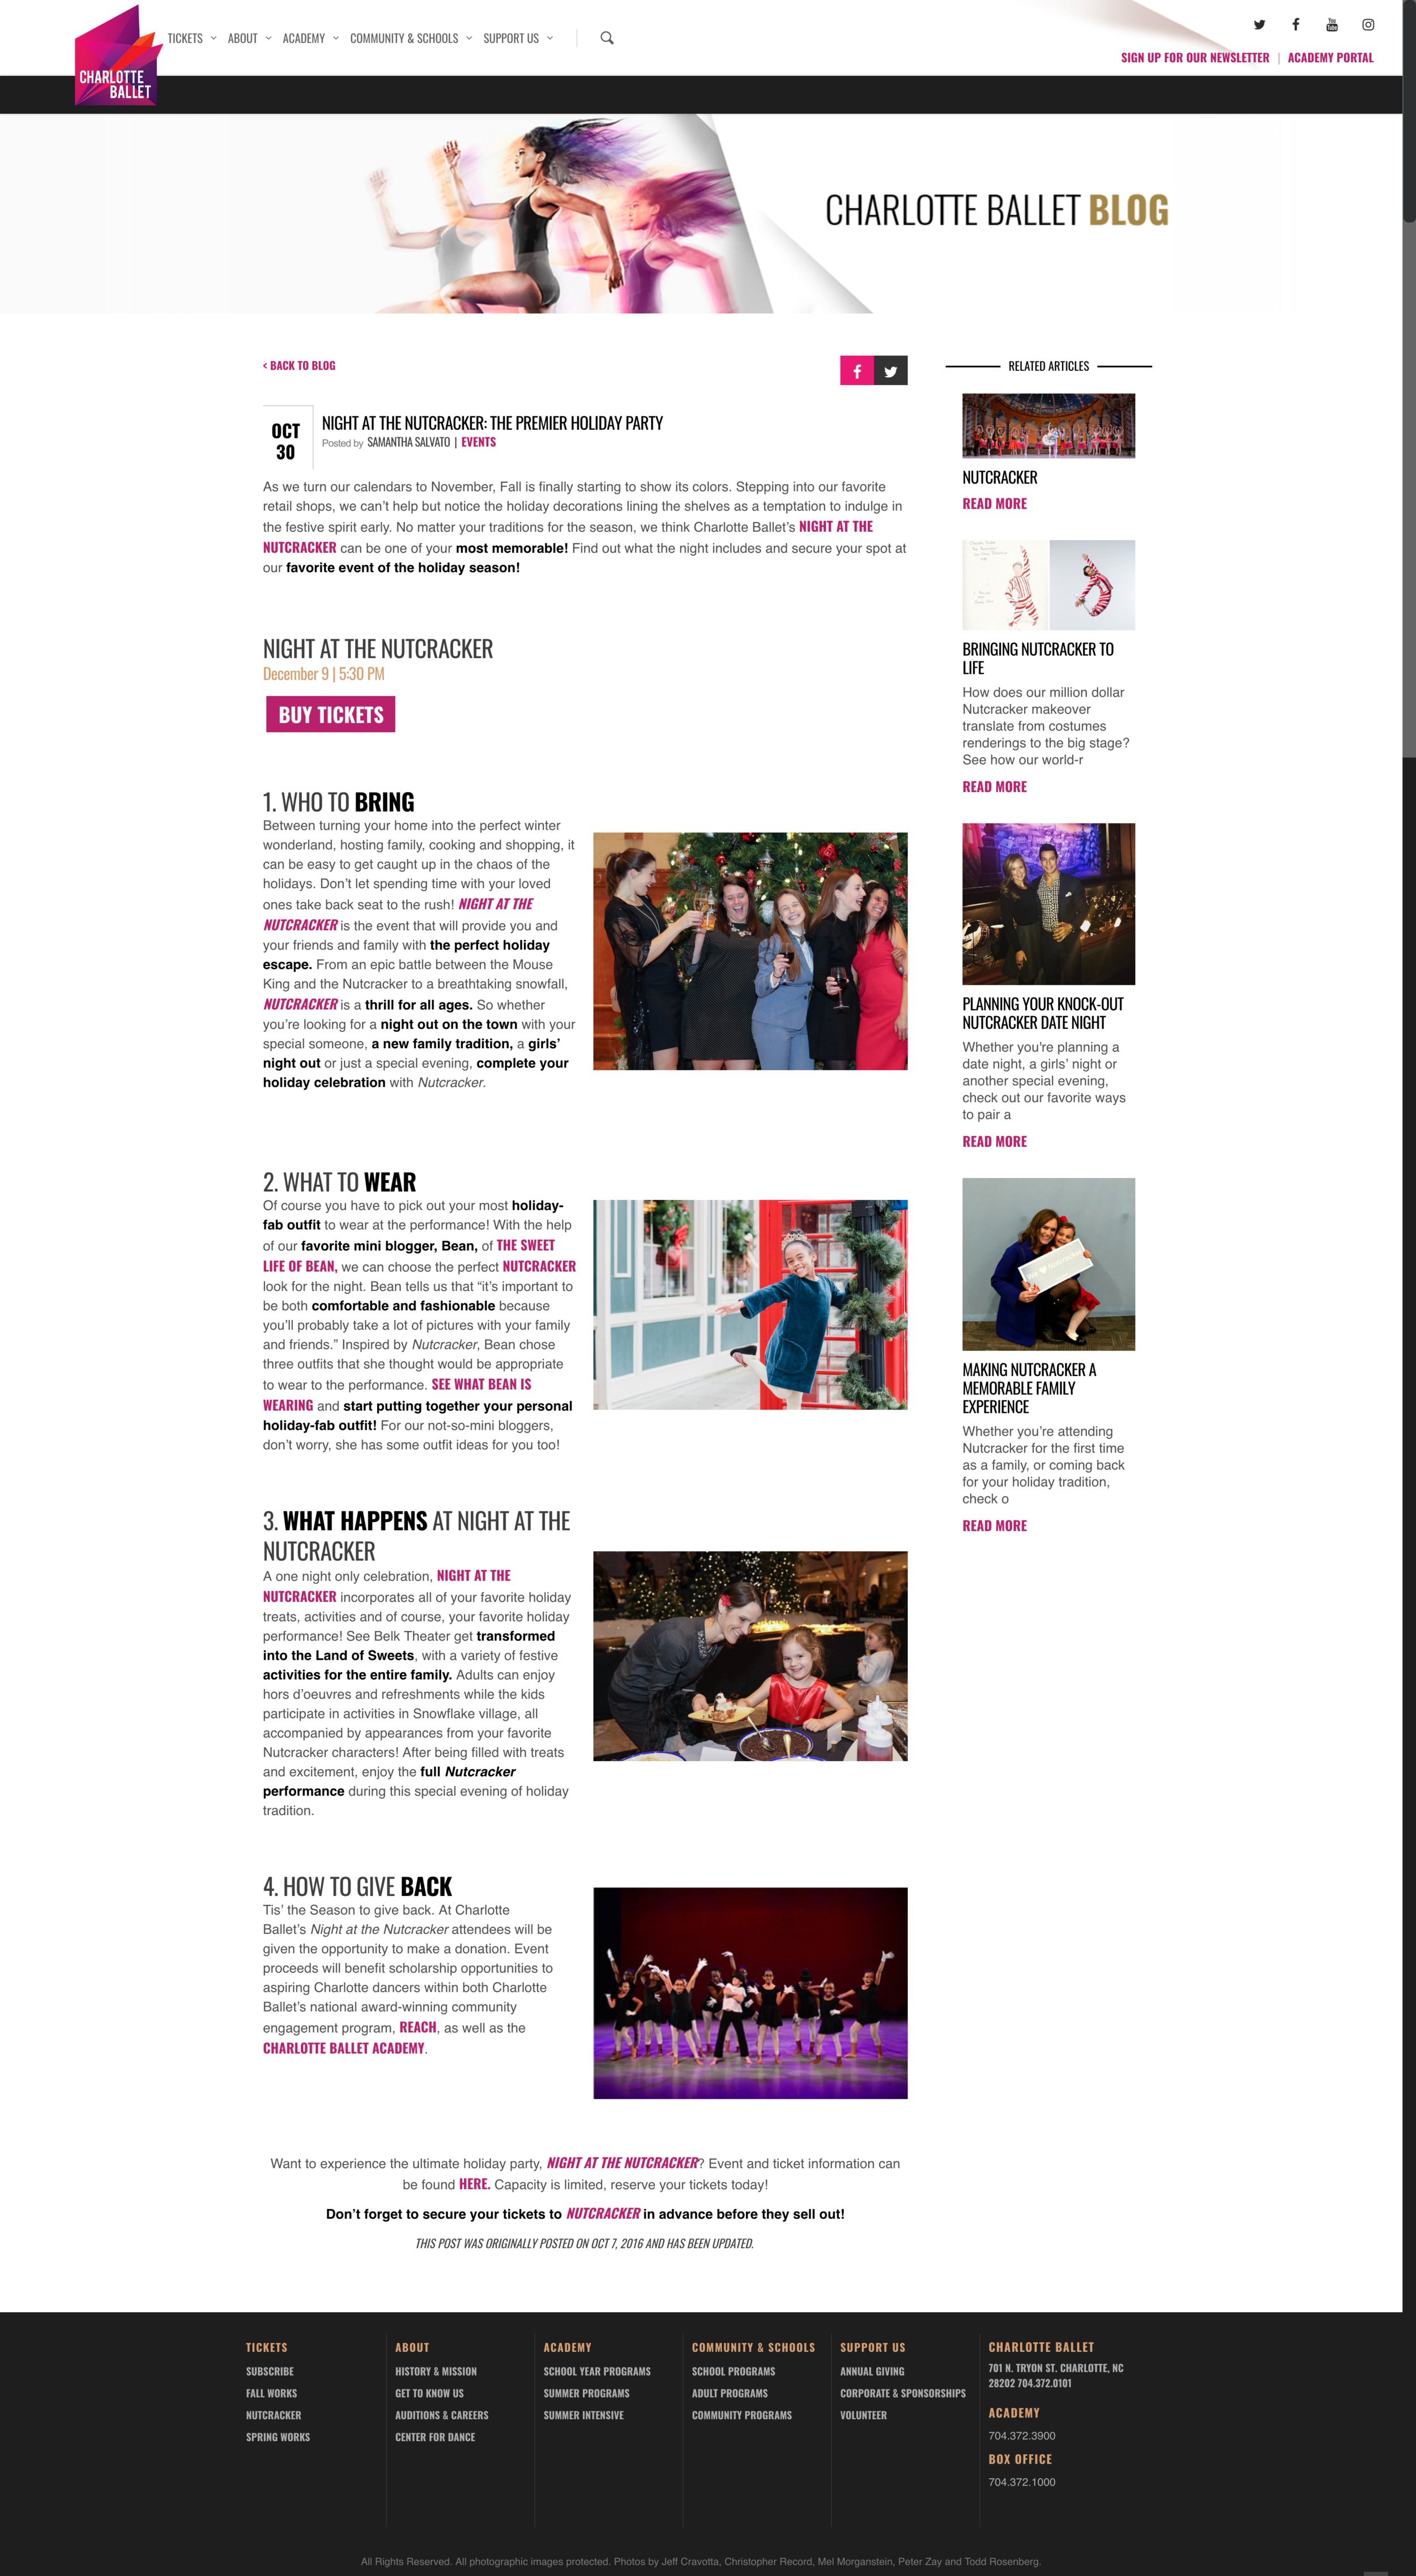 screencapture-charlotteballet-org-night-at-the-nutcracker-the-premiere-holiday-party-2019-04-14-12_19_36.png